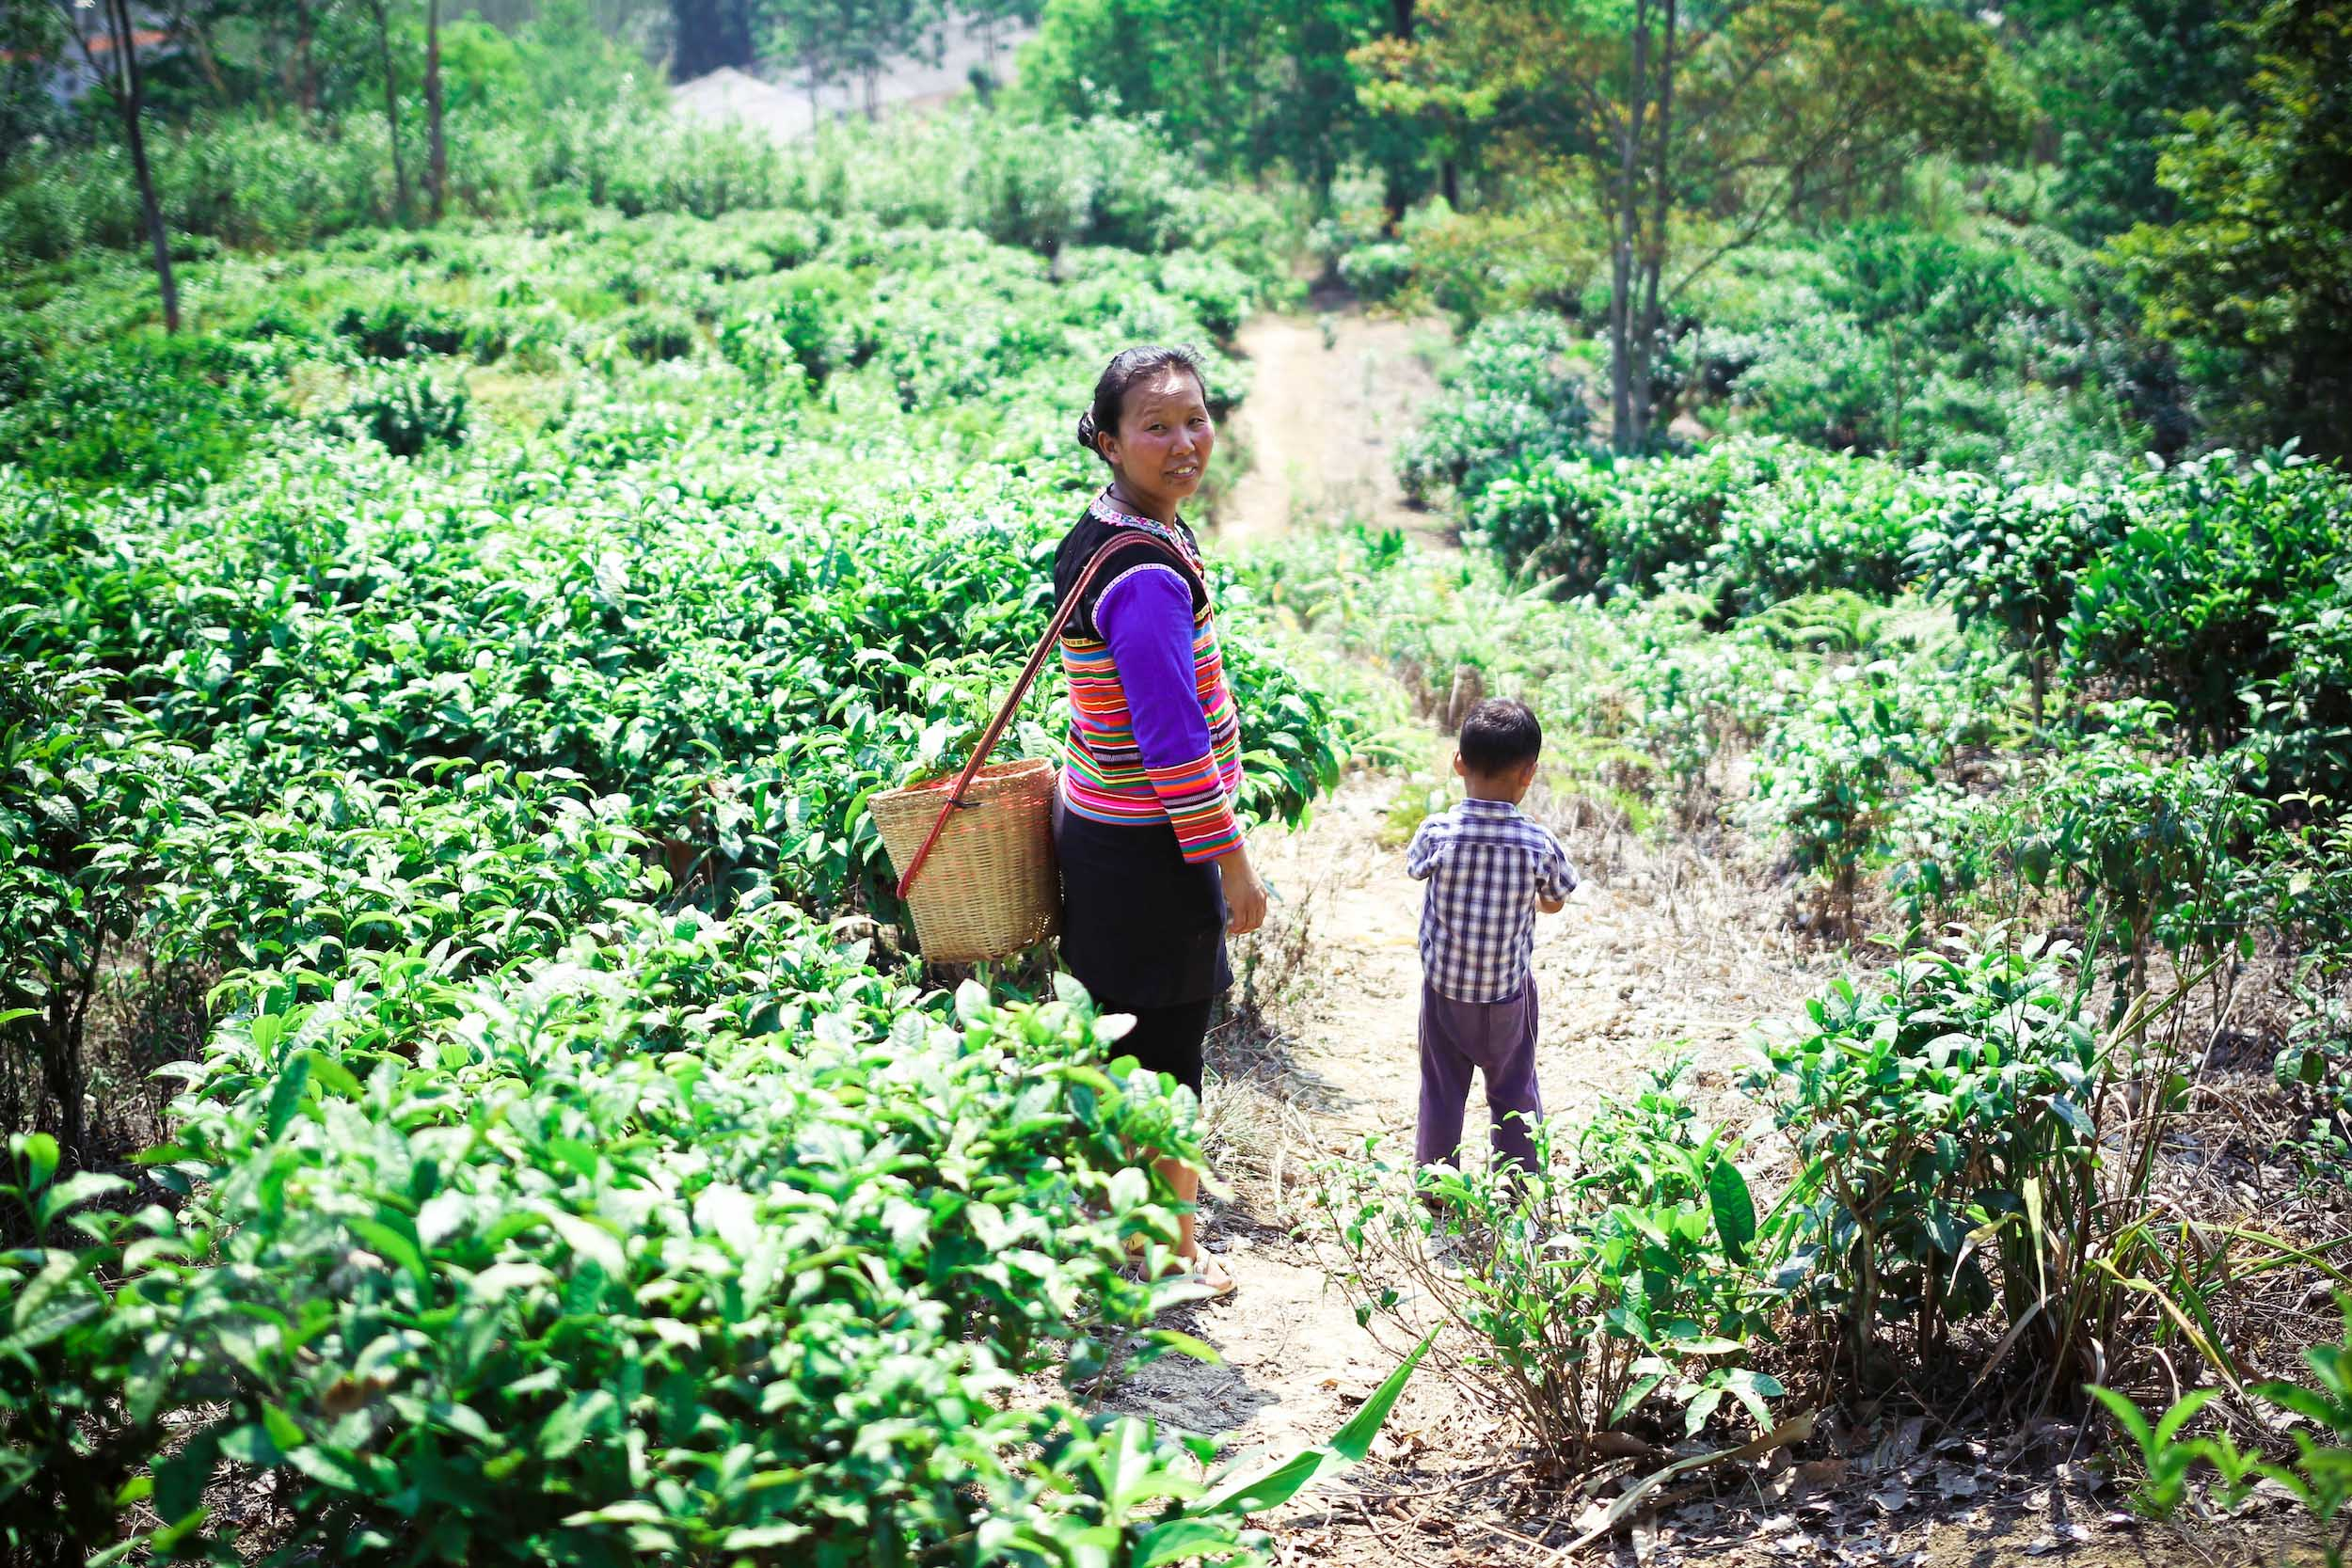 Mother and Son from Tea Farmers of Yunnan - 2016, © Jin Zhao